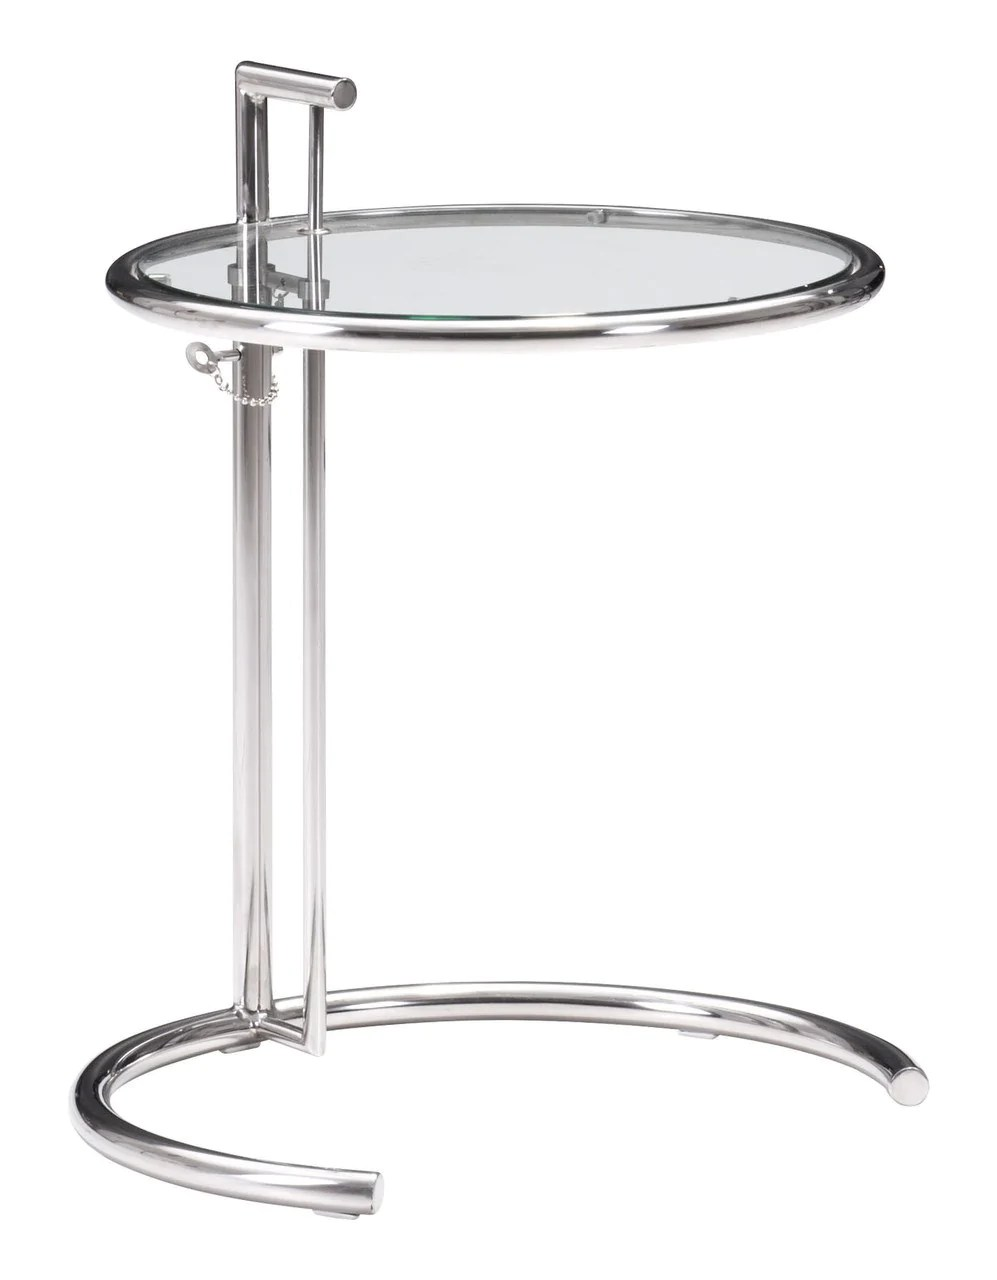 Eileen Gray Table Eileen Gray Side Table